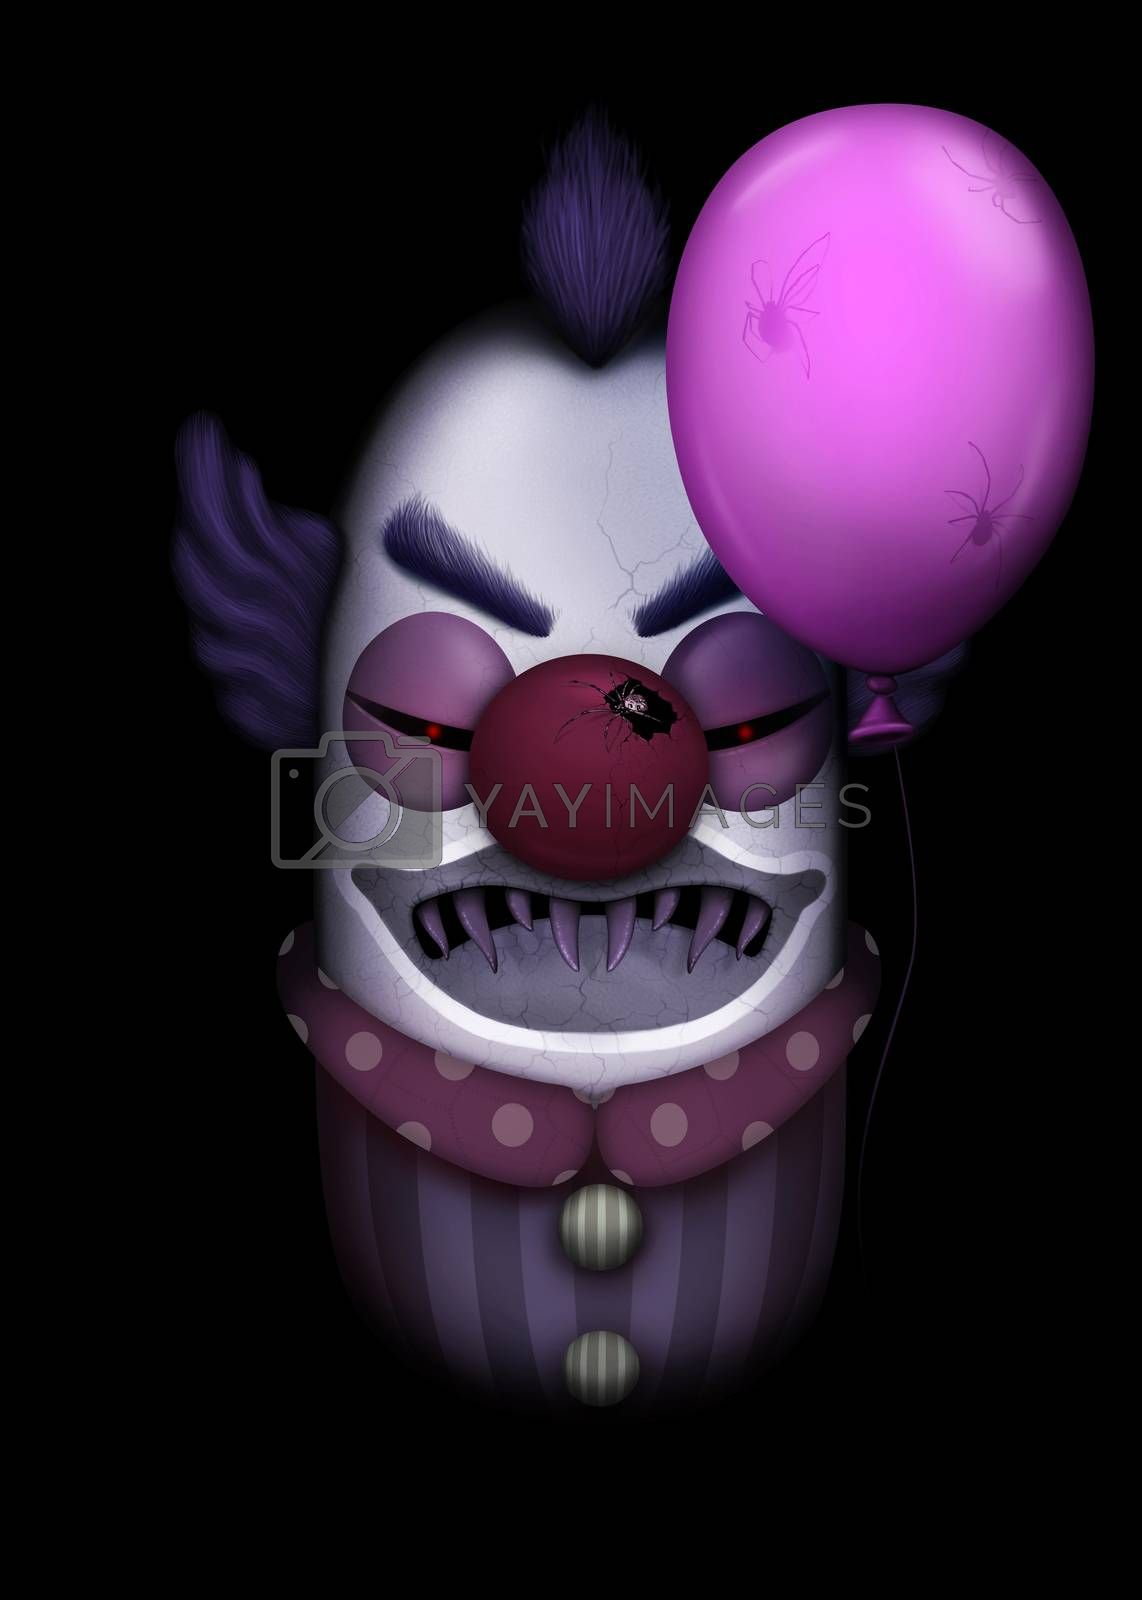 Dark clown with balloon full of spiders